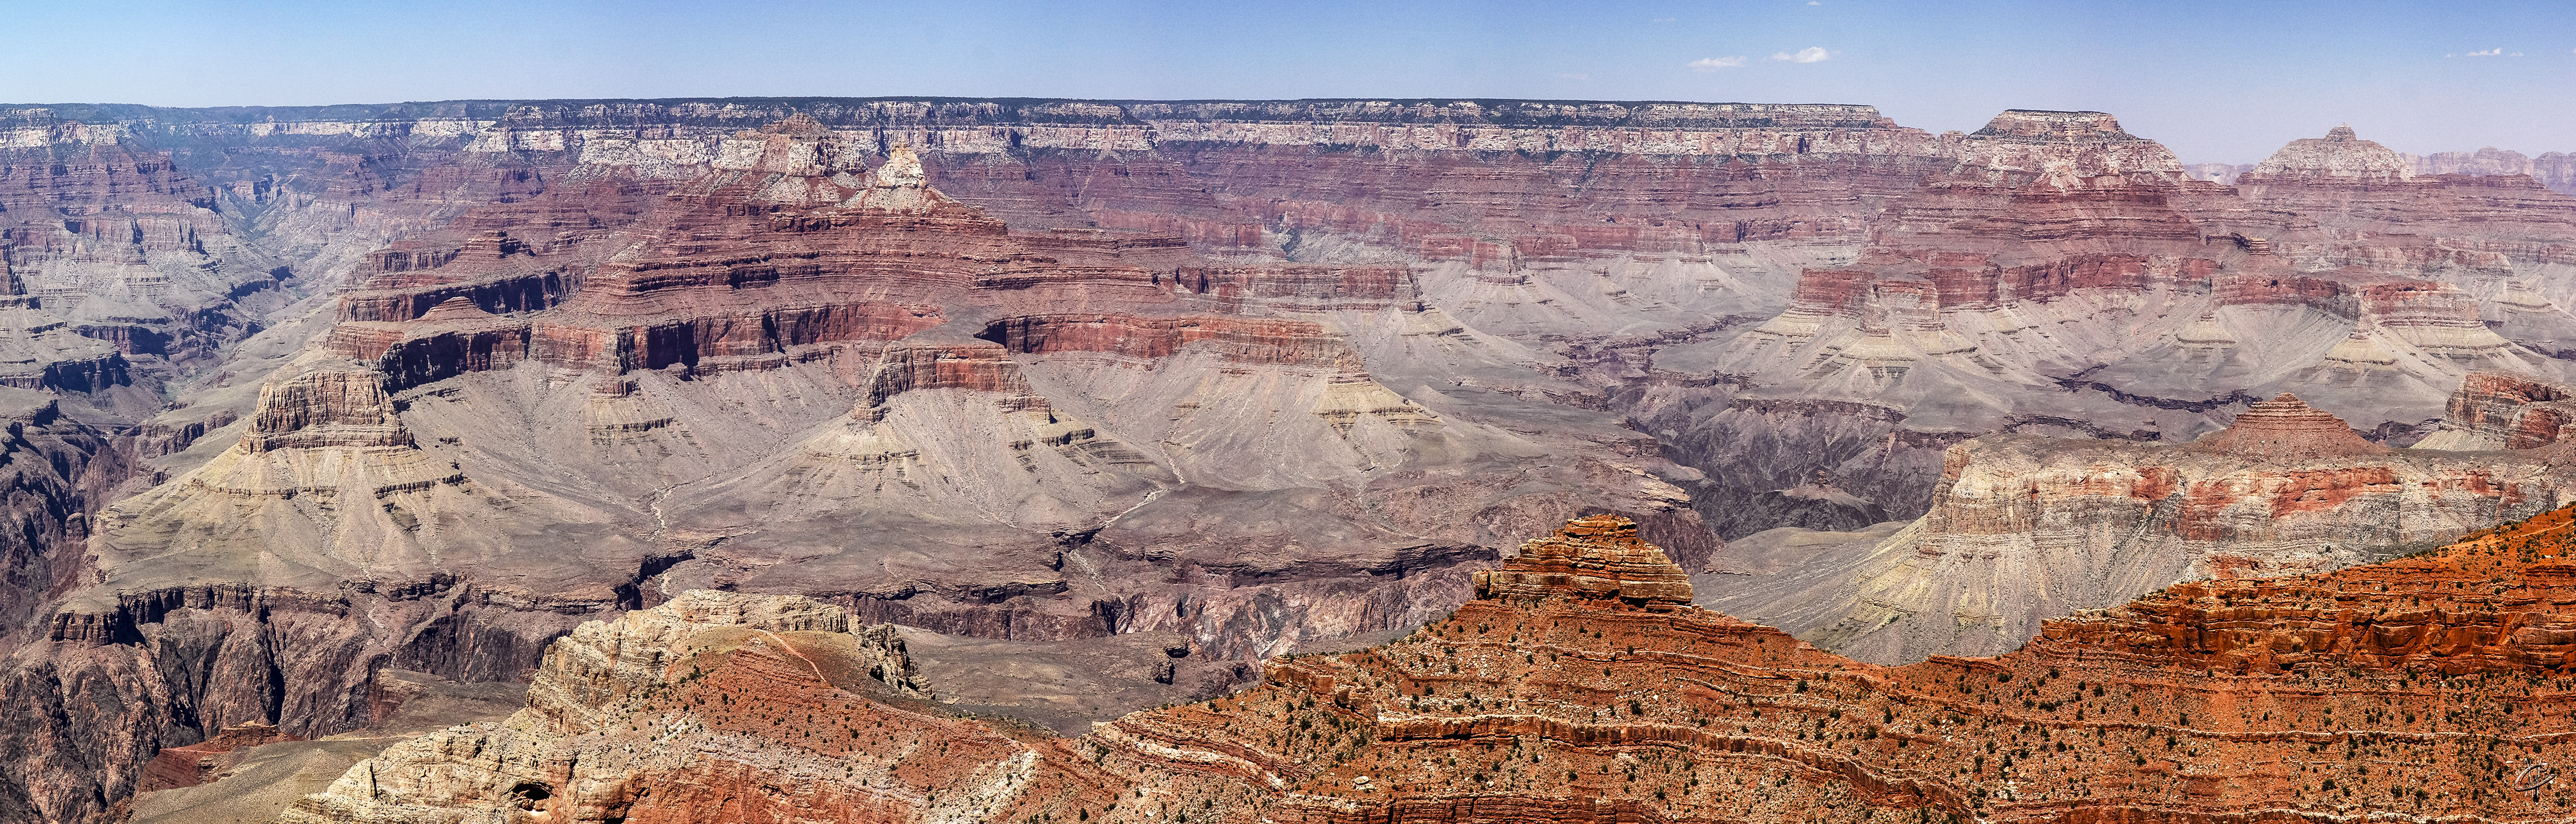 voyages-grand-canyon-usa-ouest-2012-marie-colette-becker-03